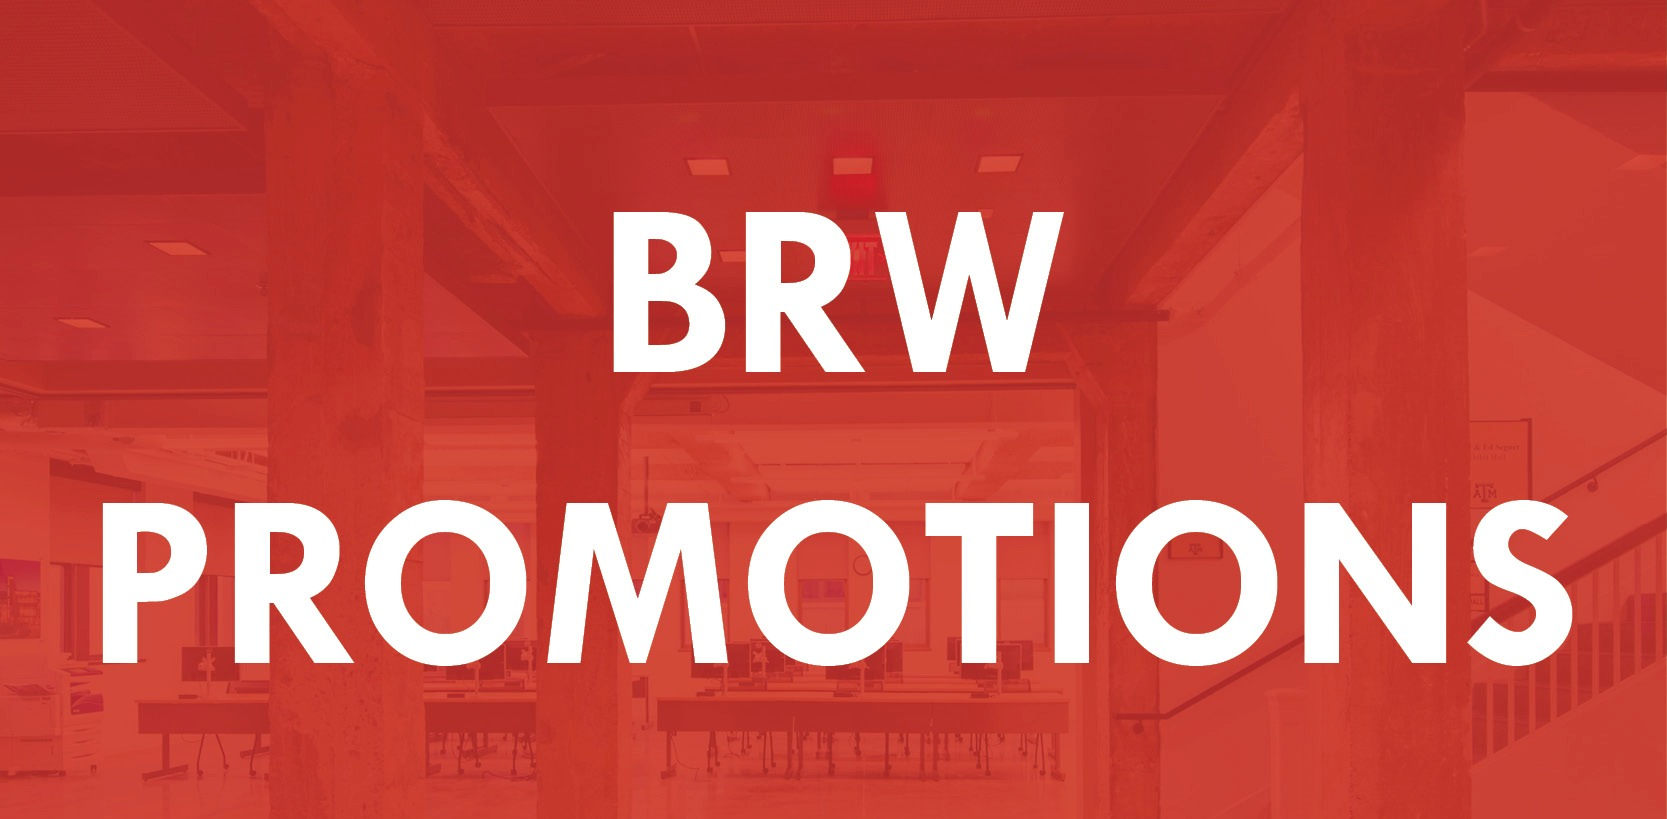 BRW Announces Staff Promotions to Kick-off 2017!